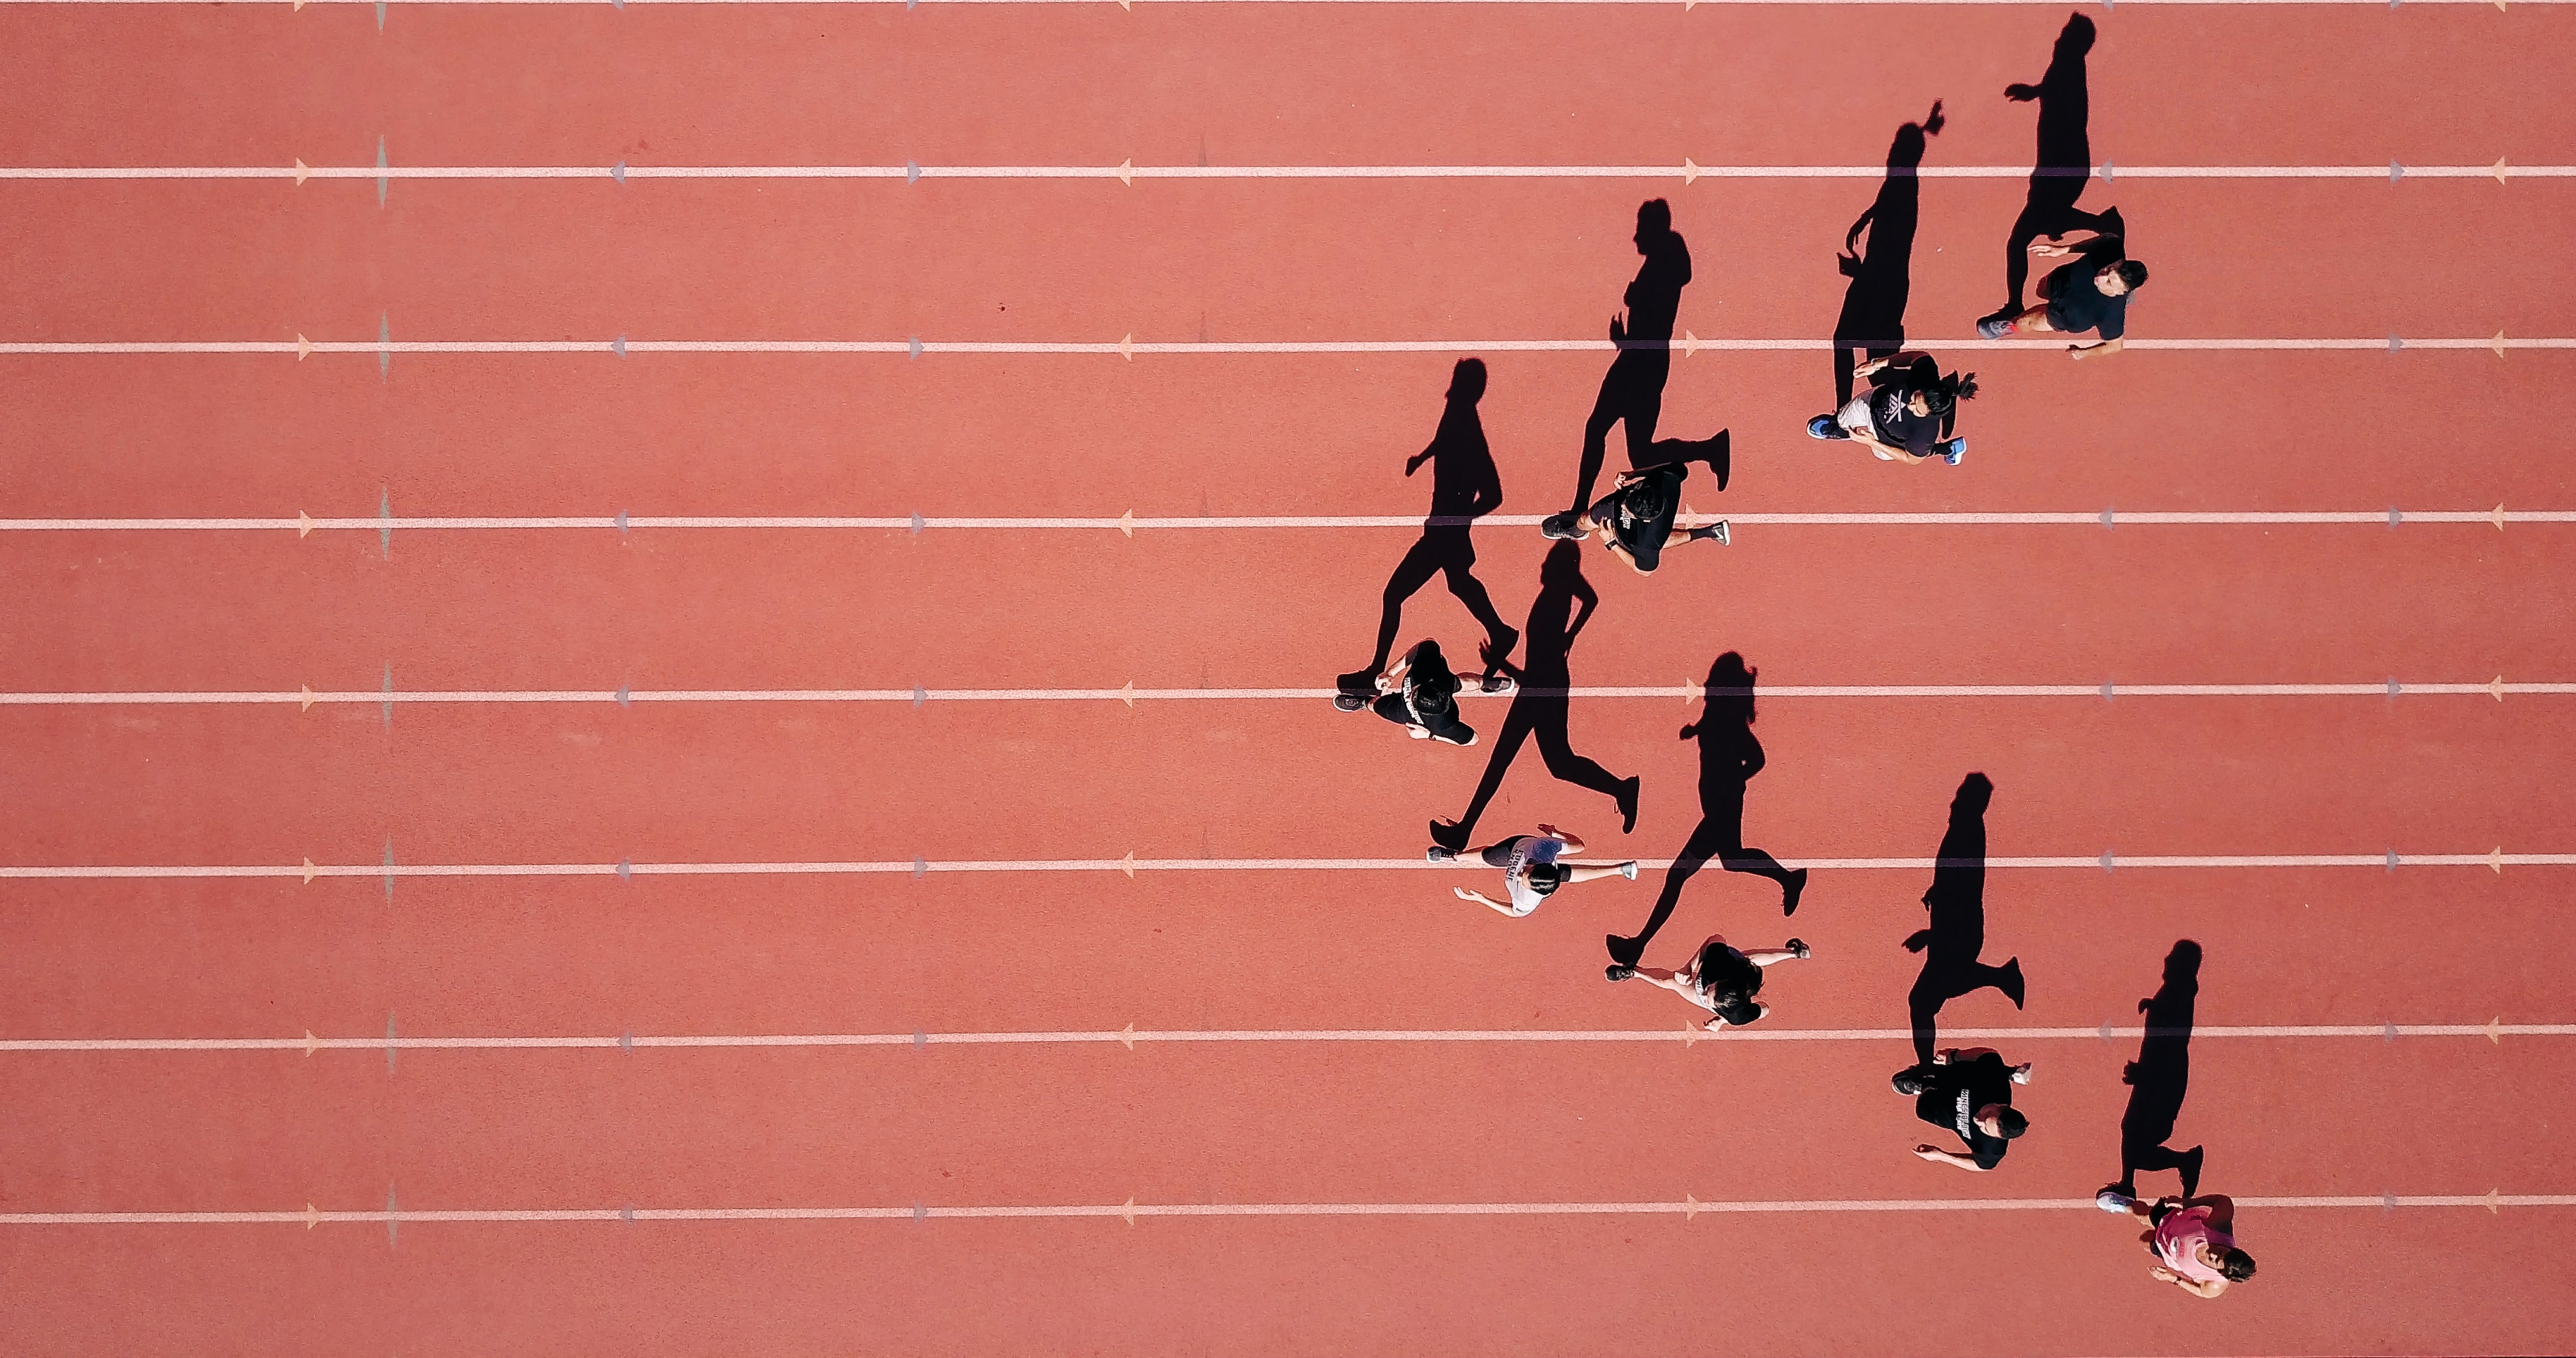 group running on track top-down view